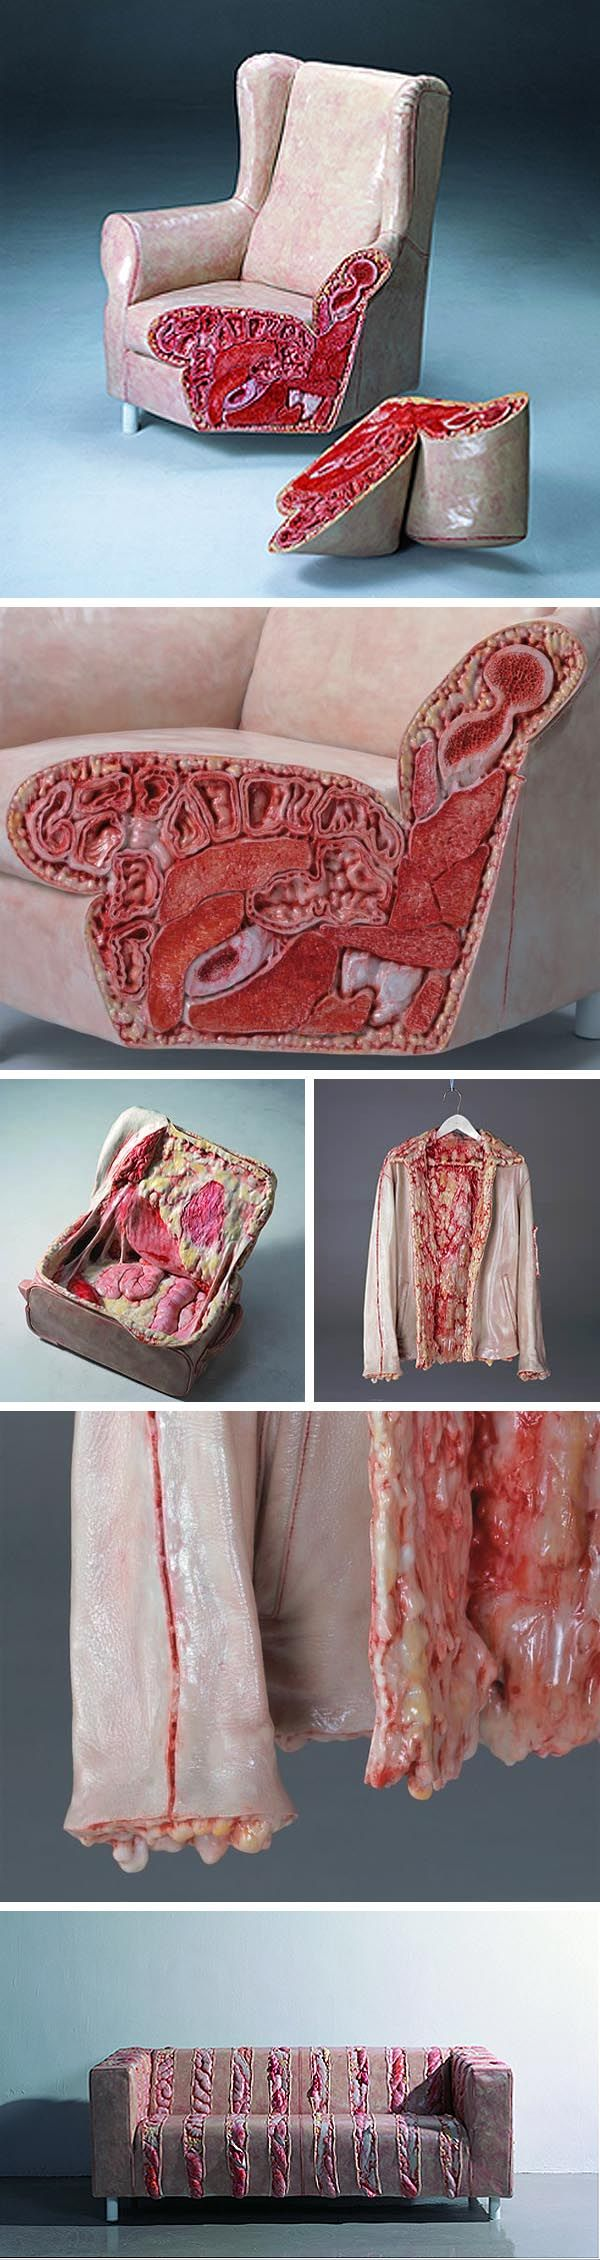 Cao Hui Gutsy sculpture  Resin sculpture with human animal innards oozing out at seams